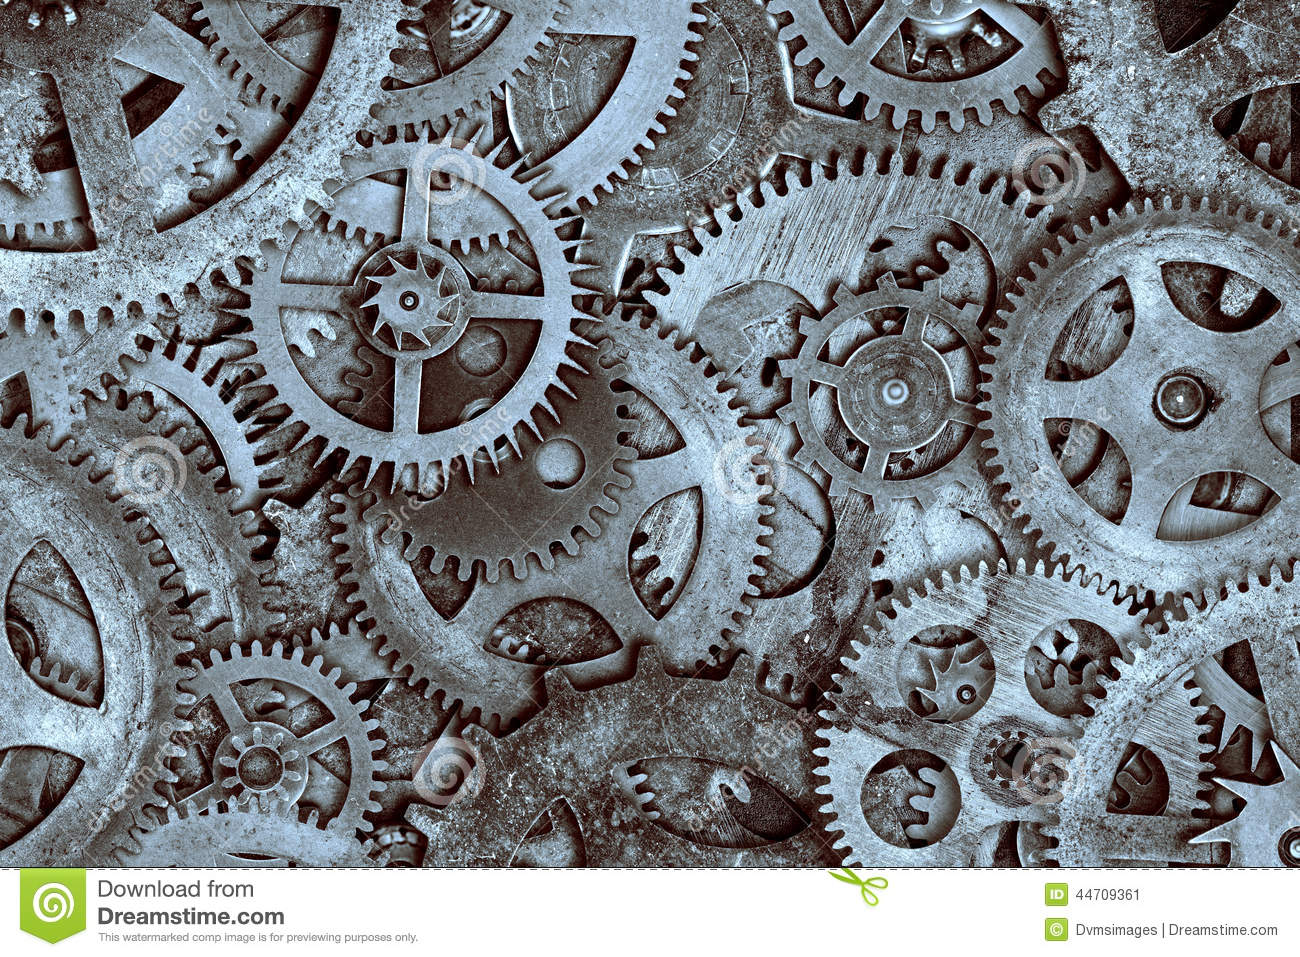 clock cogs background stock image  image of cogs  surreal